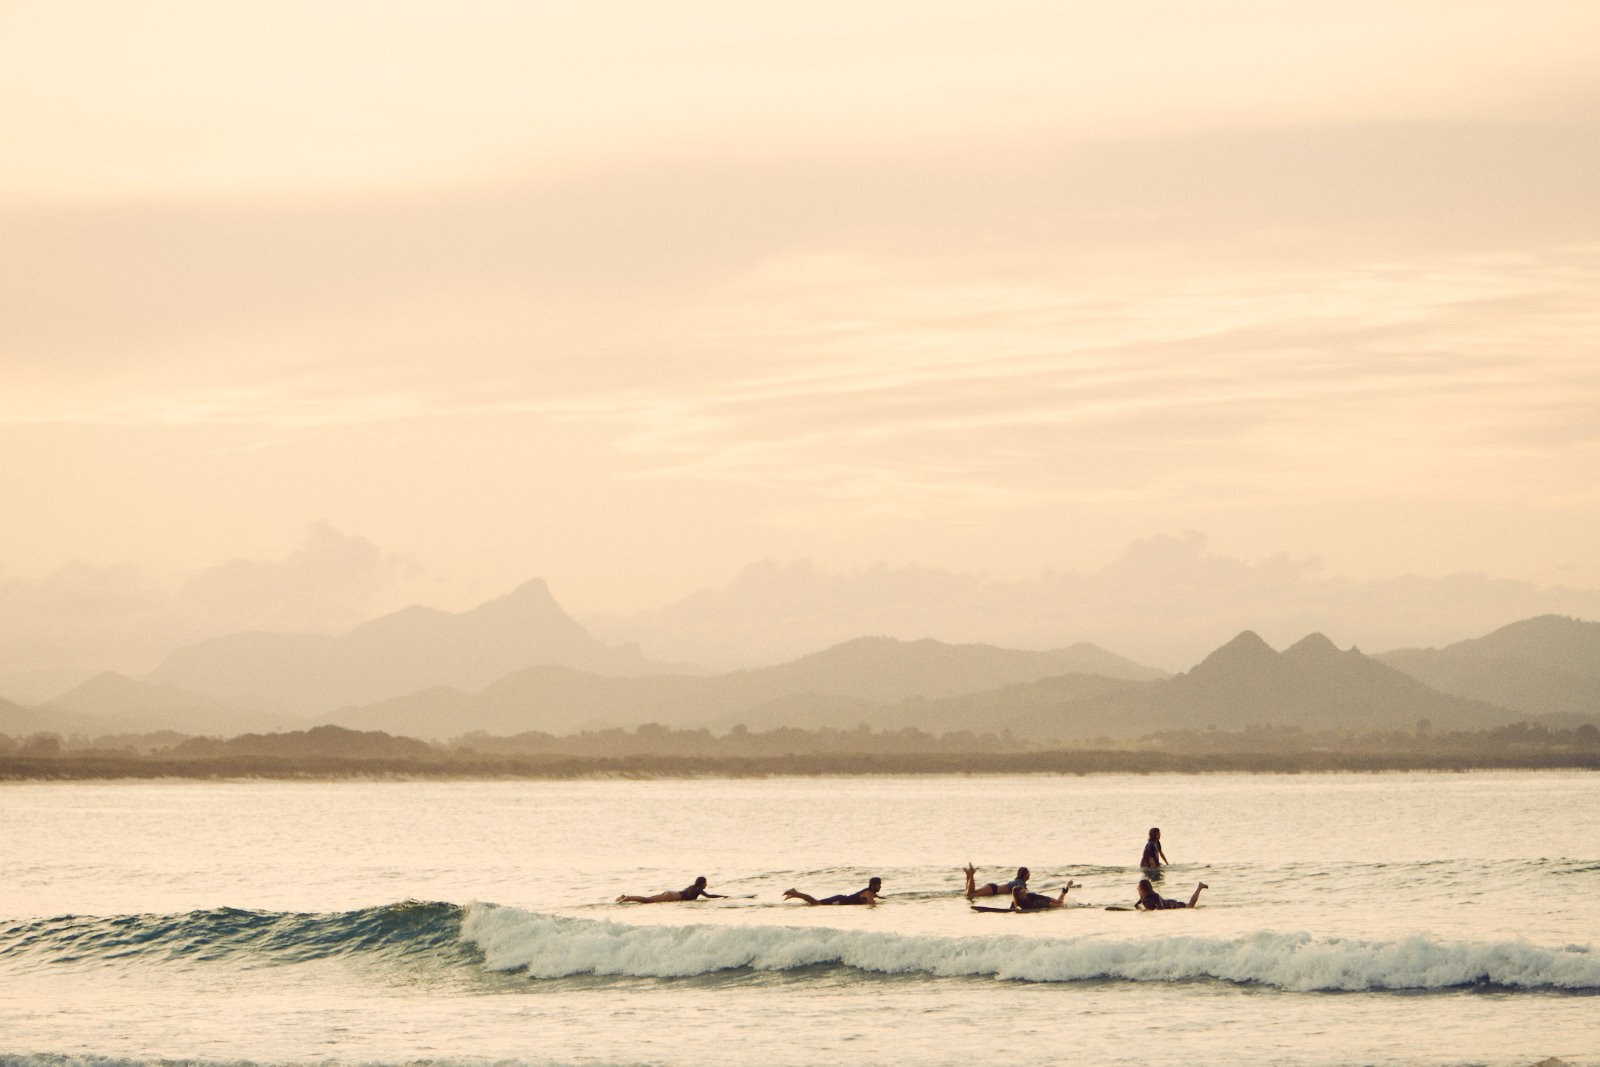 byron bay, ming nomchong, surfing, women surf, susnet session,